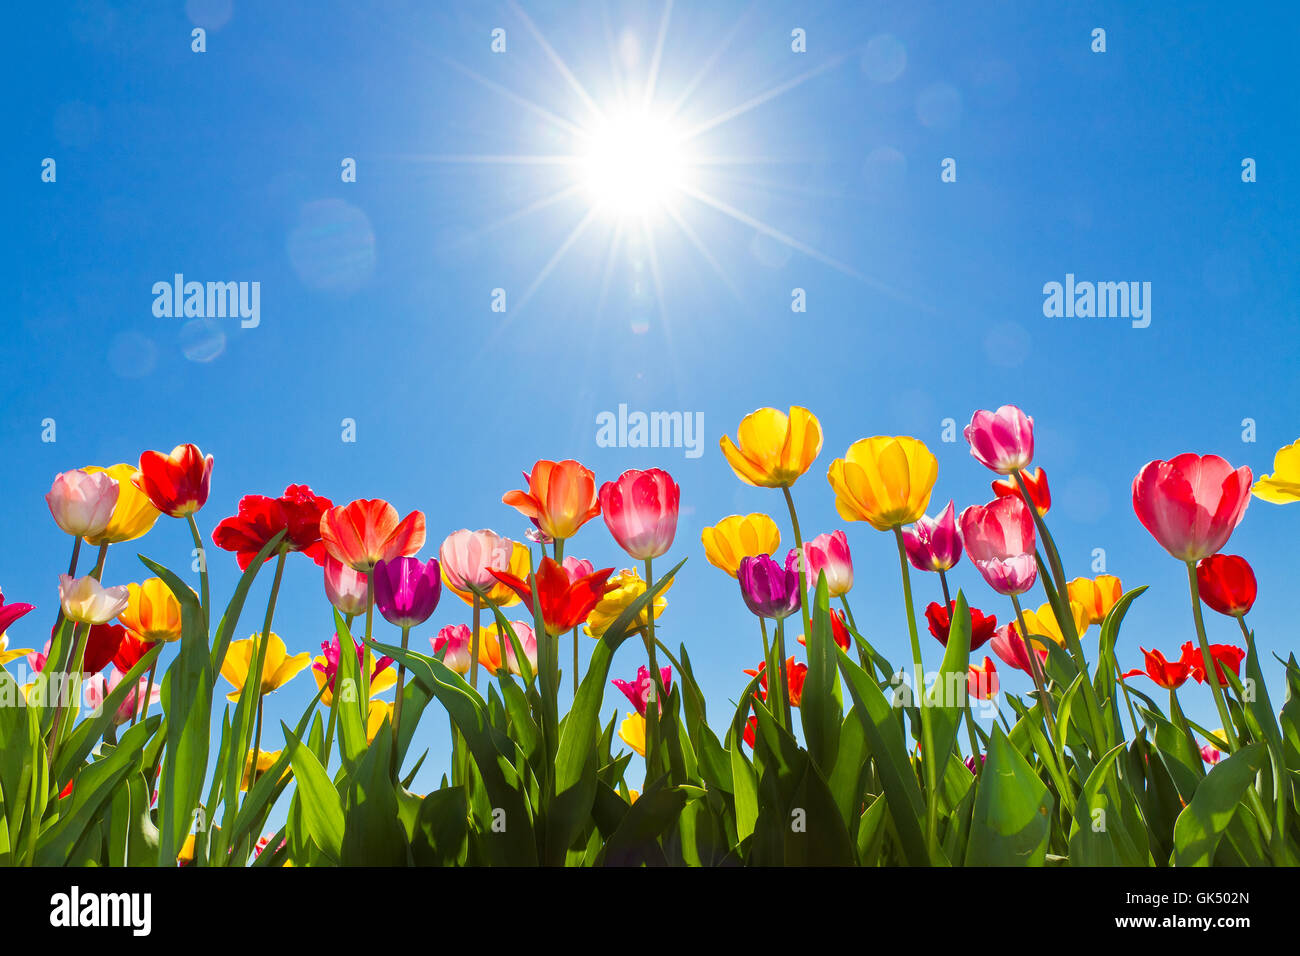 tulpen in der sonne stockfoto bild 115050509 alamy. Black Bedroom Furniture Sets. Home Design Ideas